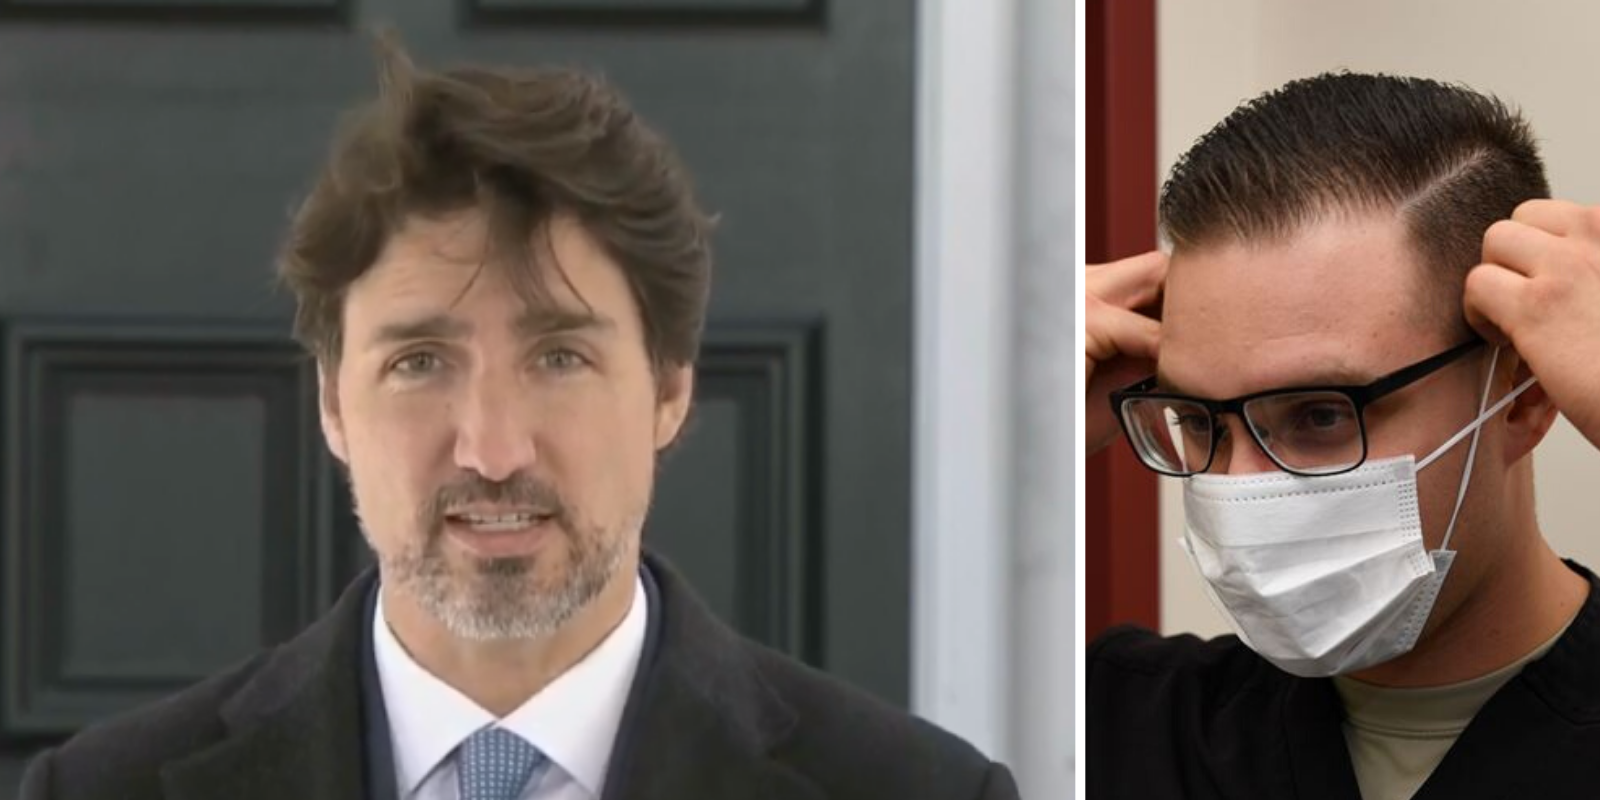 BREAKING: Trudeau says medical masks prevent people from 'speaking moistly'